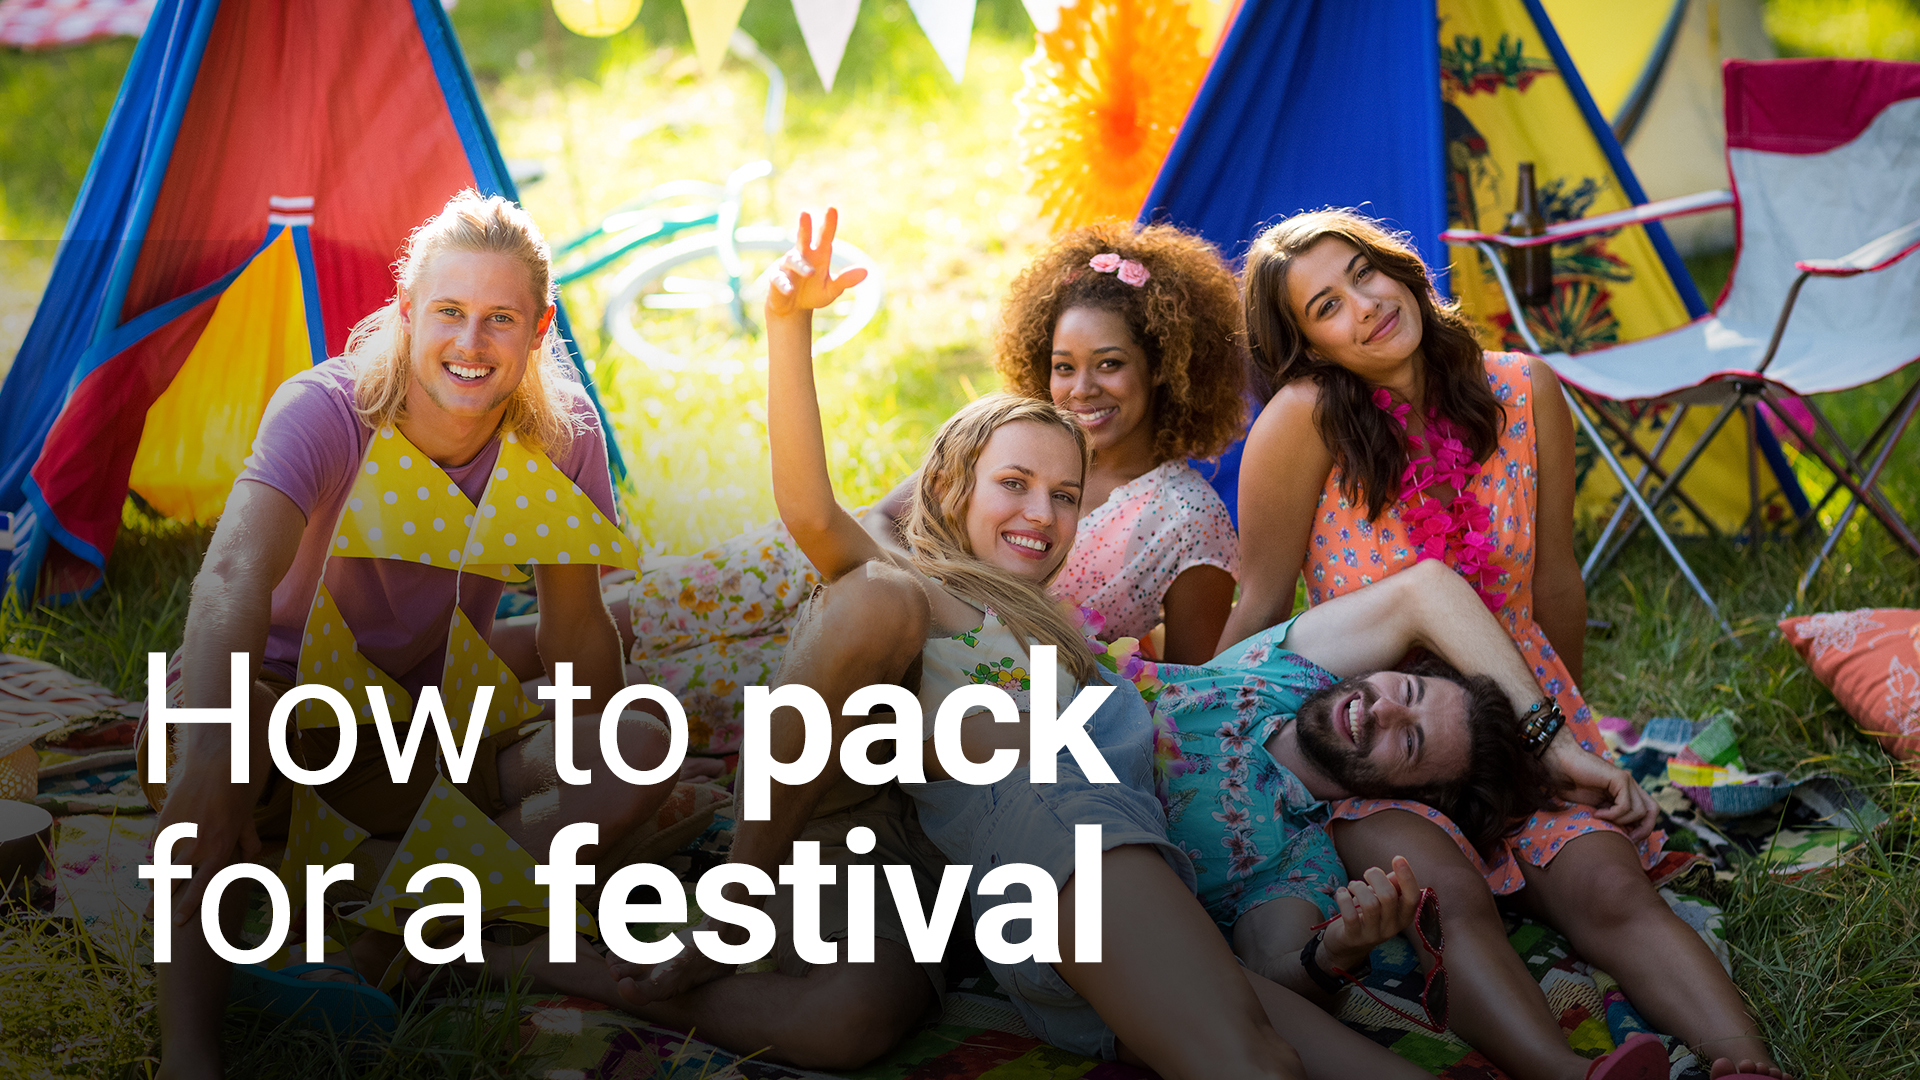 How to pack for a festival